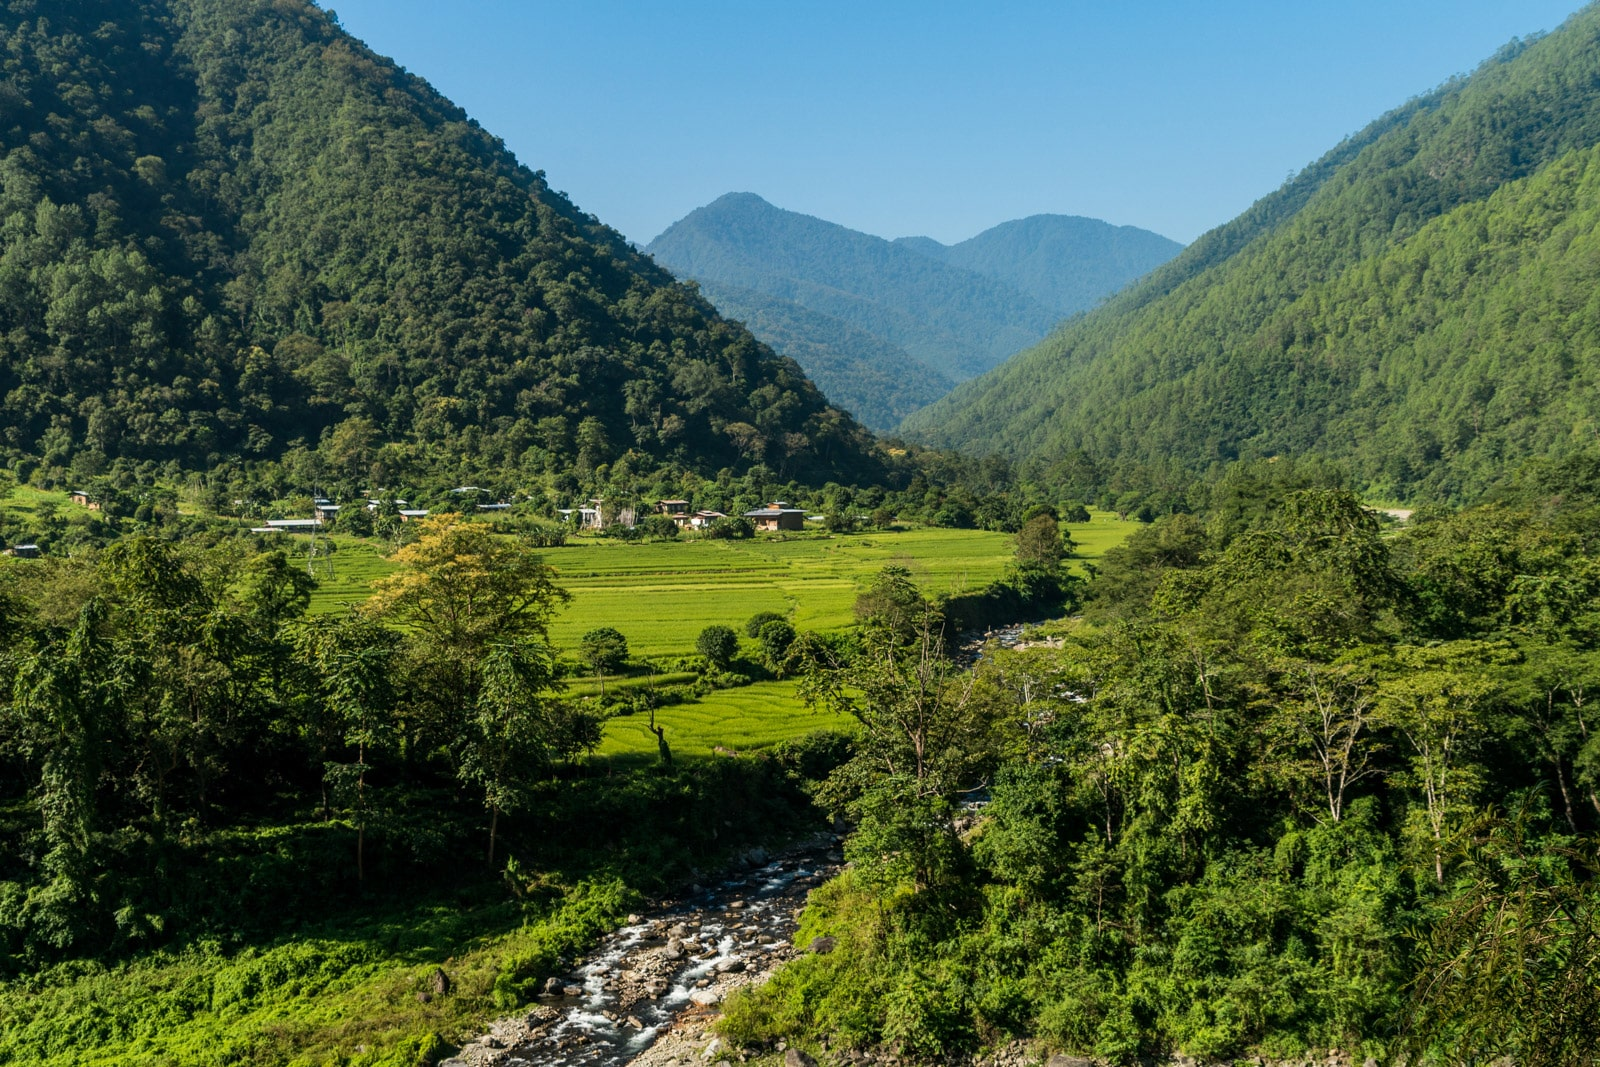 Stunning photos of Bhutan - Birtii village, Zhemgang district - Lost With Purpose travel blog